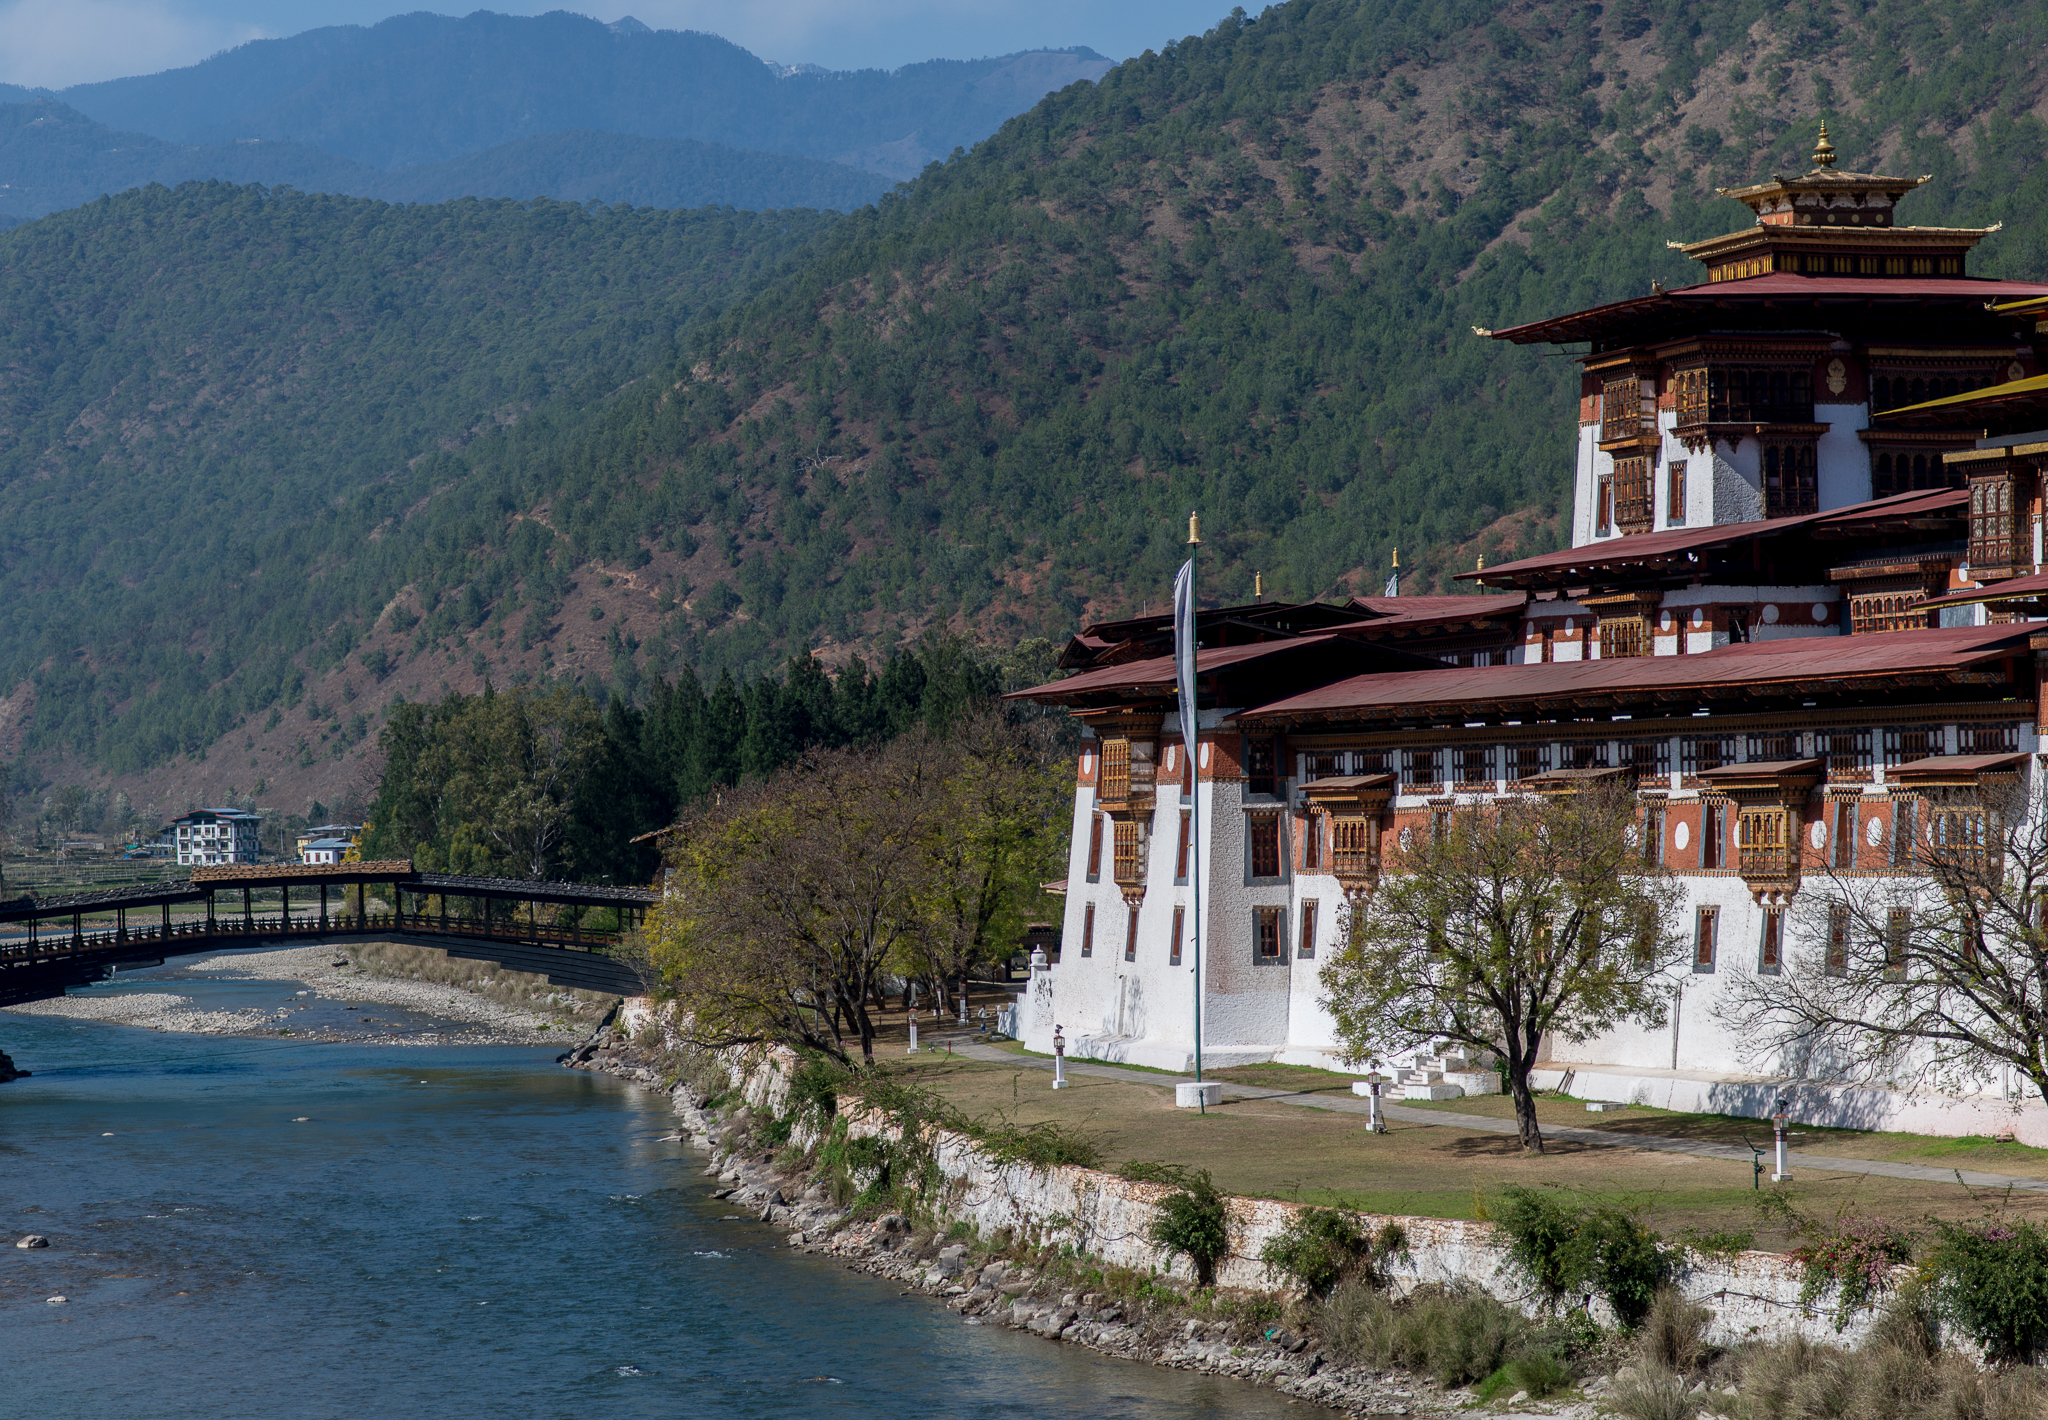 The Dzong in Punakha